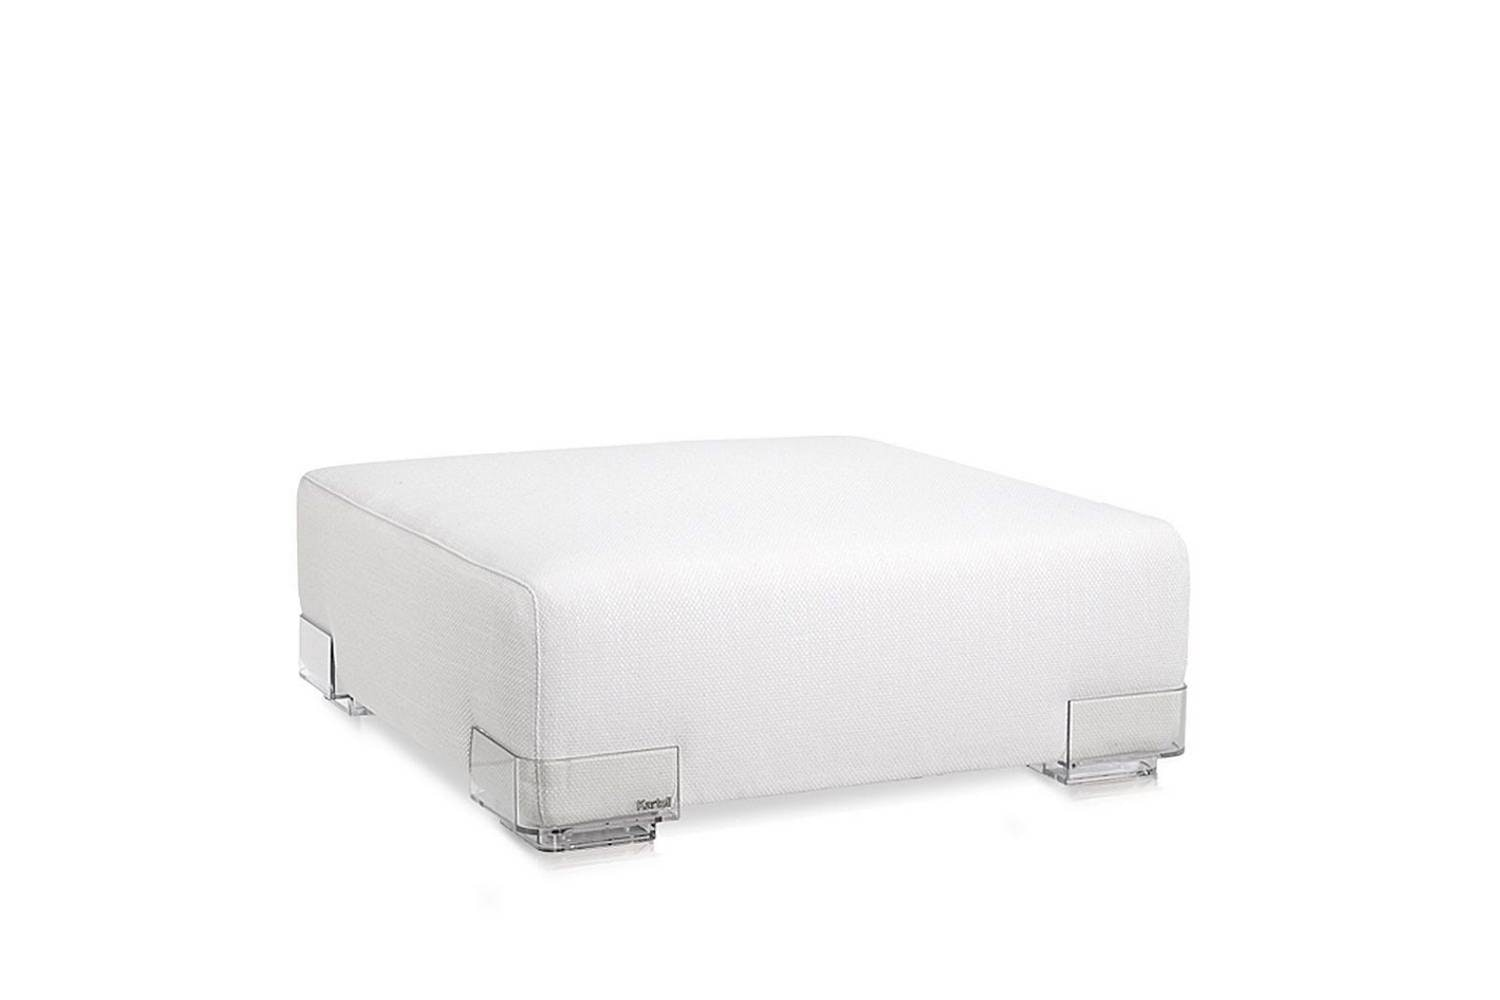 Plastics Duo Ottoman by Piero Lissoni for Kartell